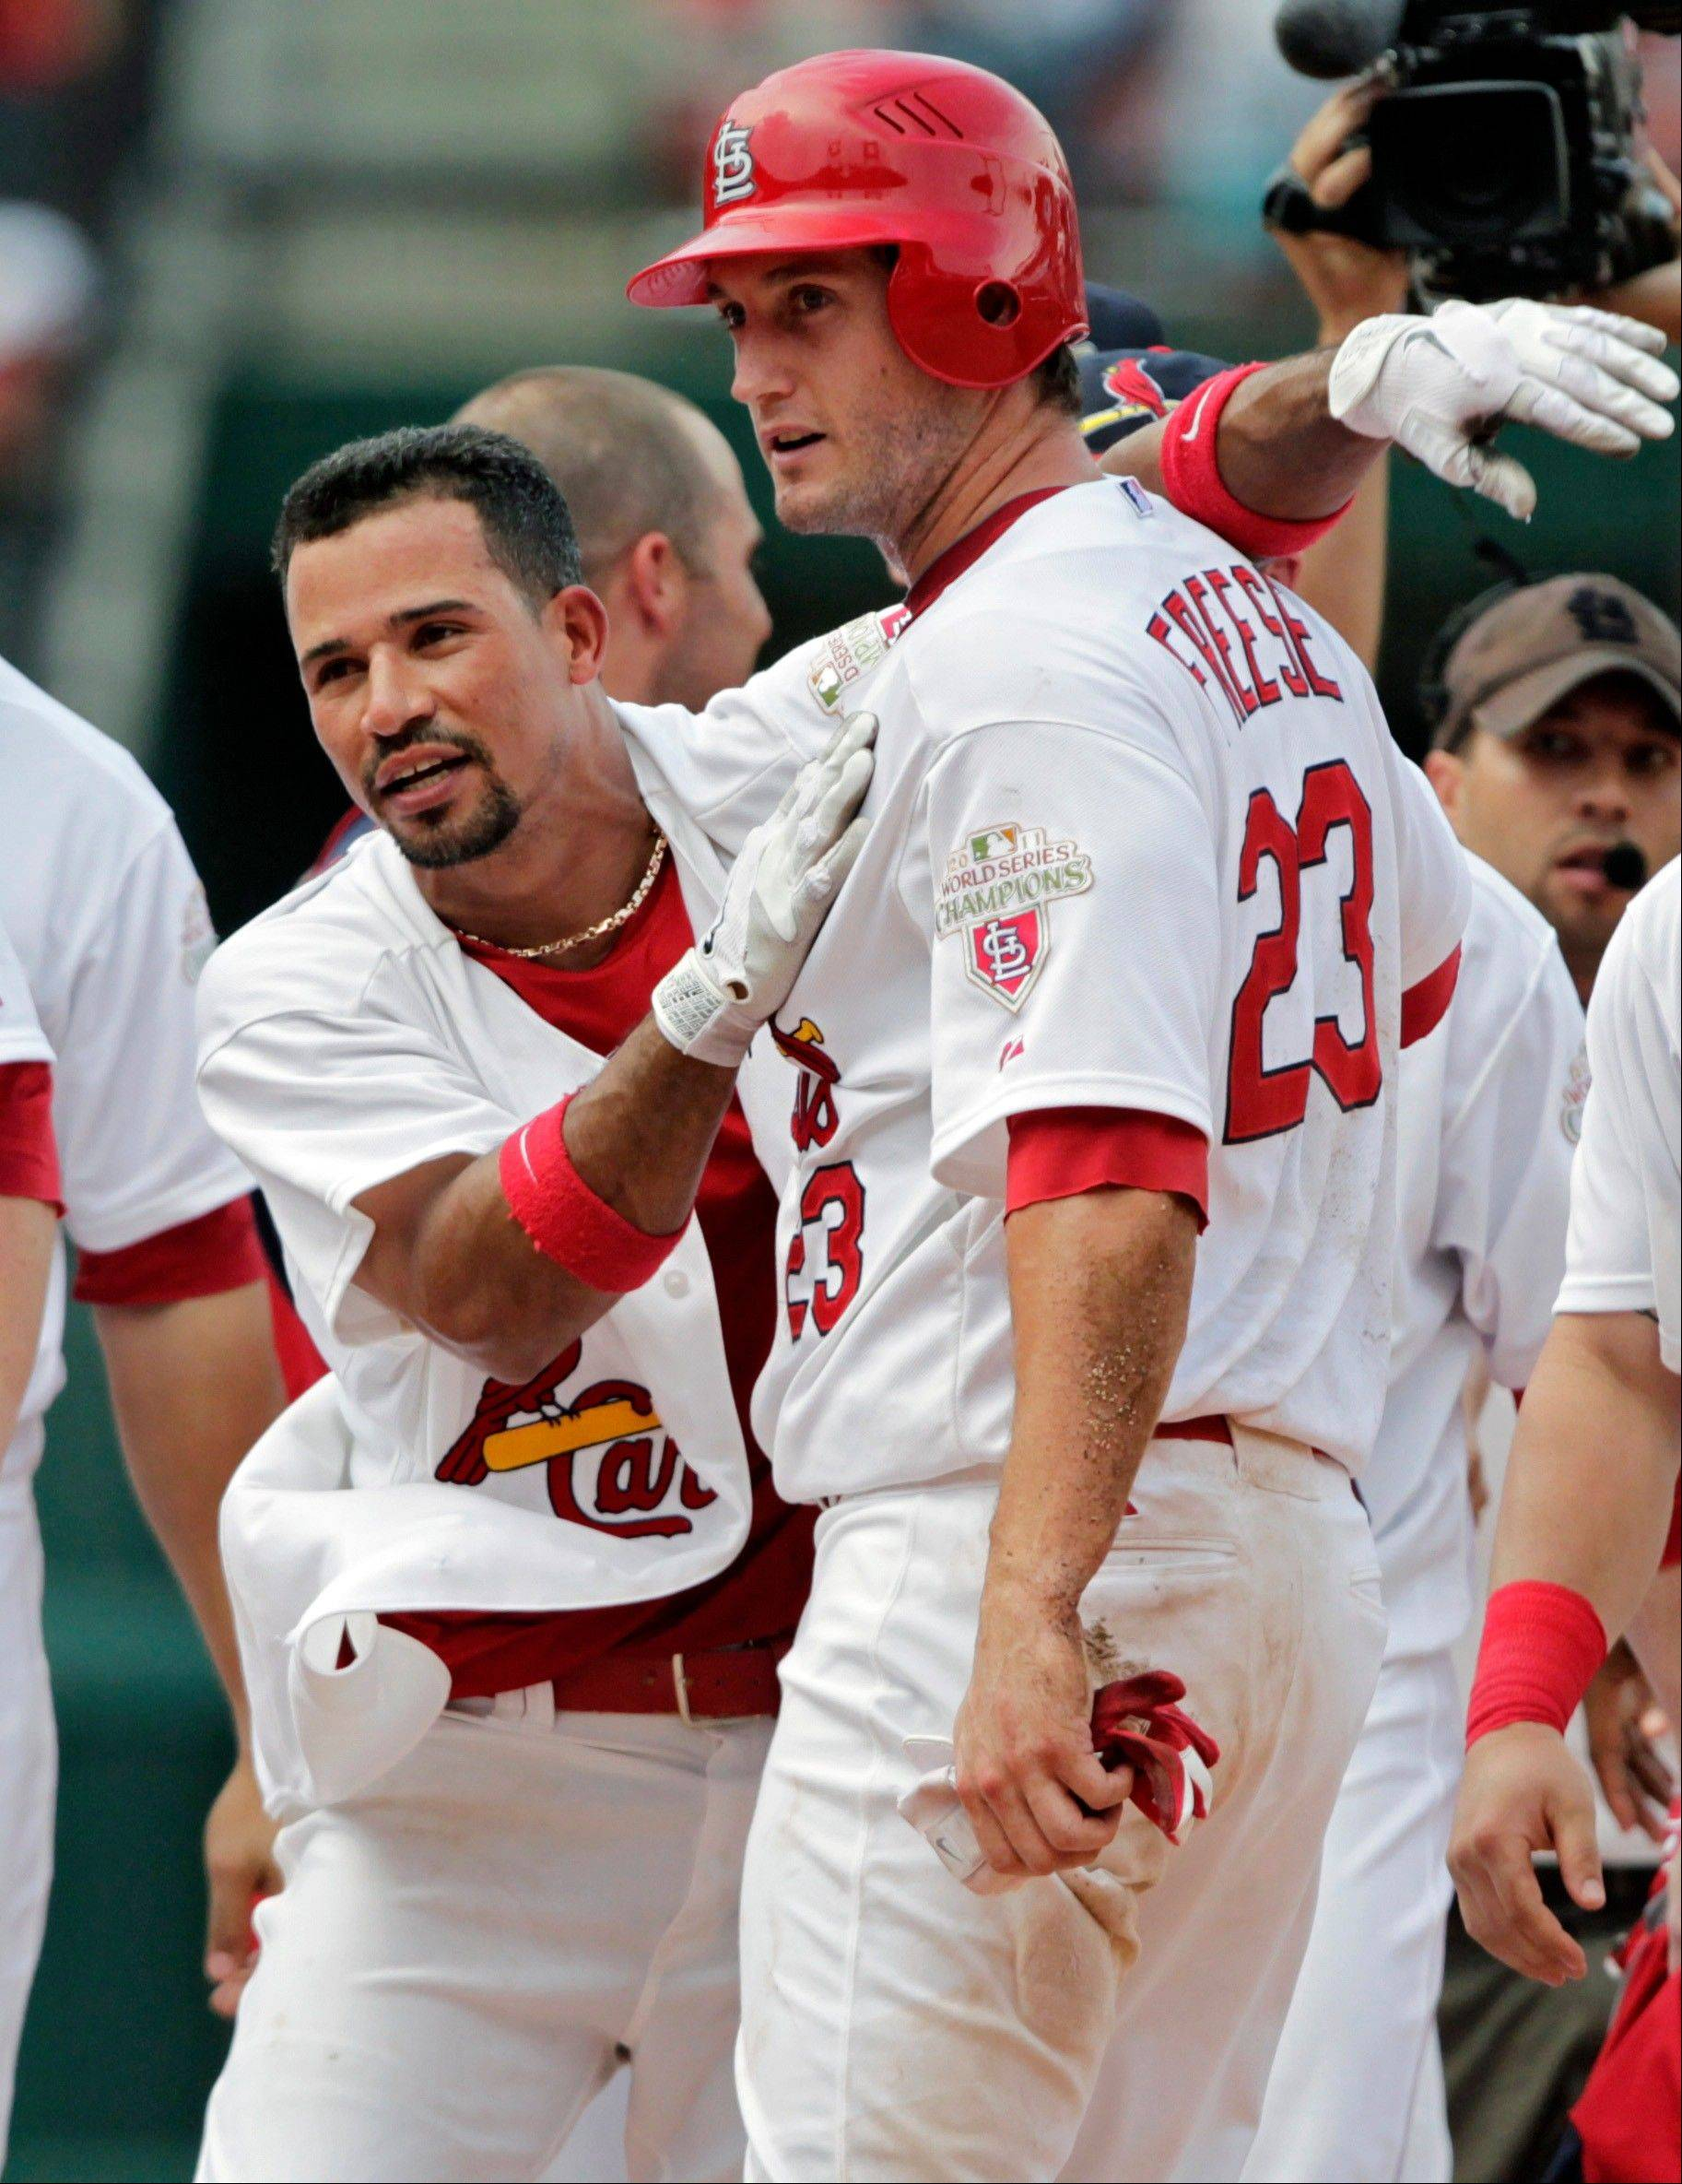 The Cardinals' Rafael Furcal celebrates with David Freese after their 5-4 win over the Miami Marlins on Sunday in St. Louis. Freese scored the winning run on a single hit by Furcal.